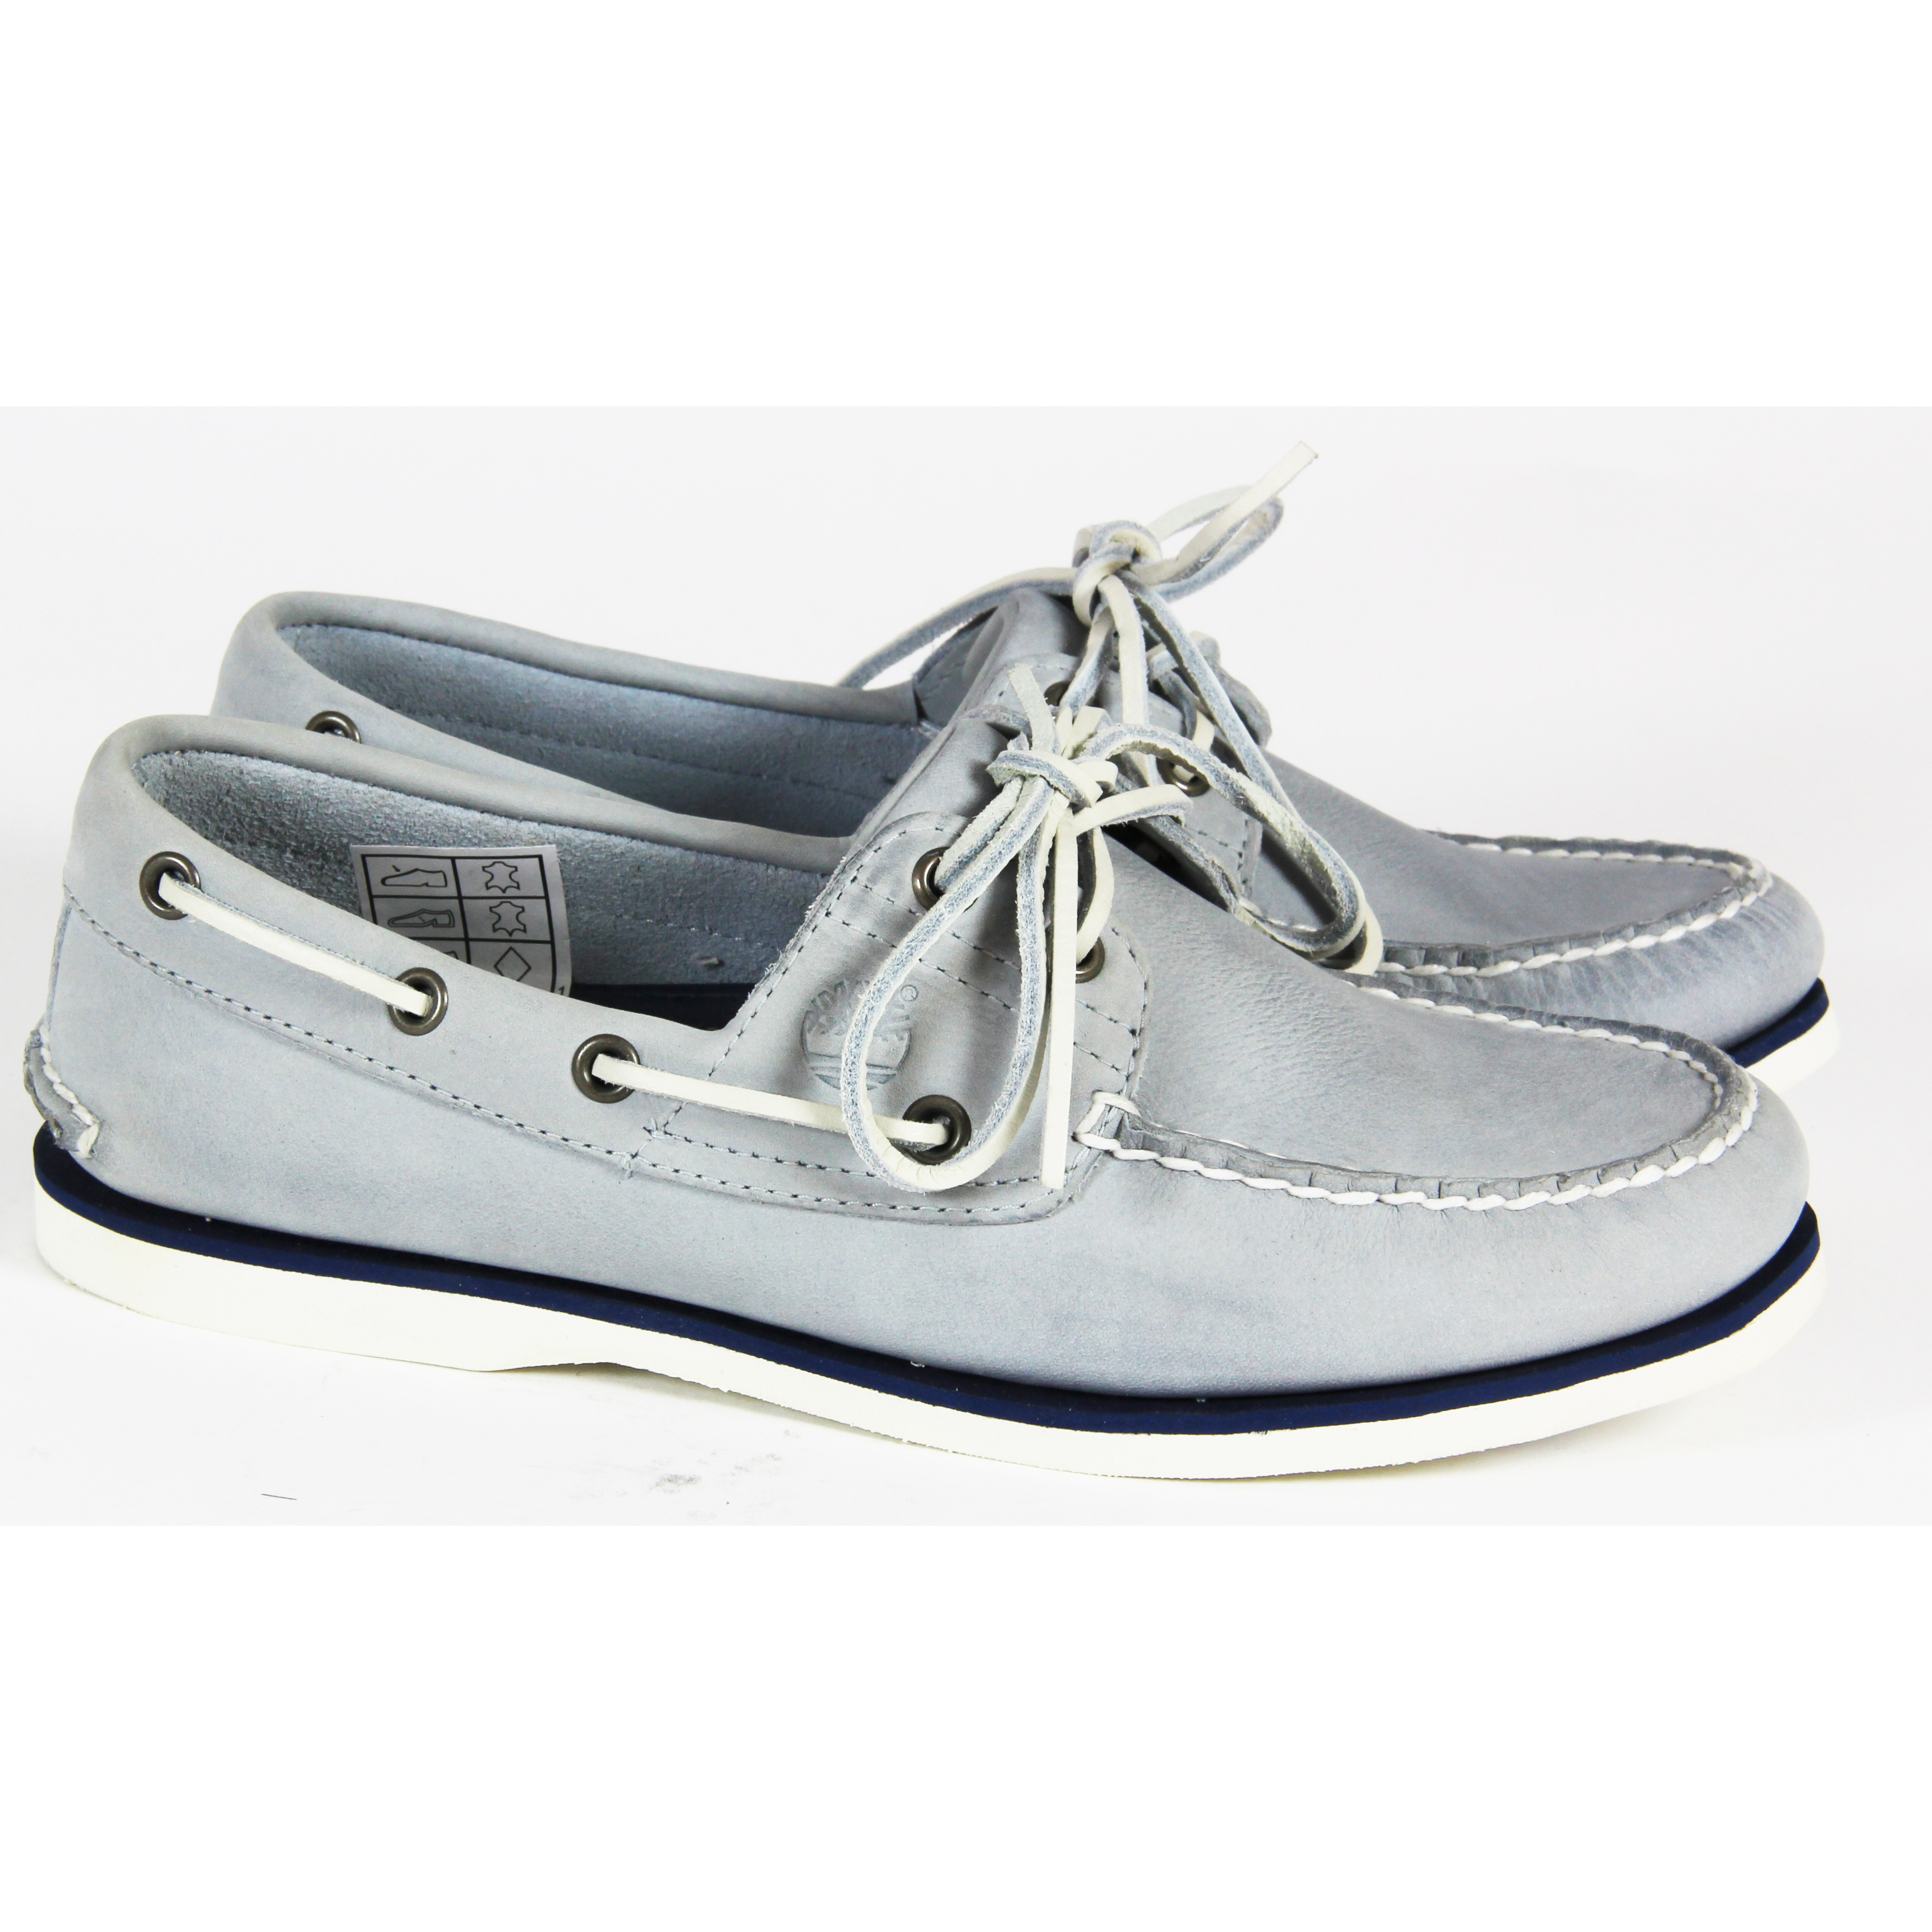 MENS-TIMBERLAND-CASUAL-LACE-UP-2-EYE-BOAT-SHOES-LEATHER-SHOES-TRAINERS-SIZE-UK-7